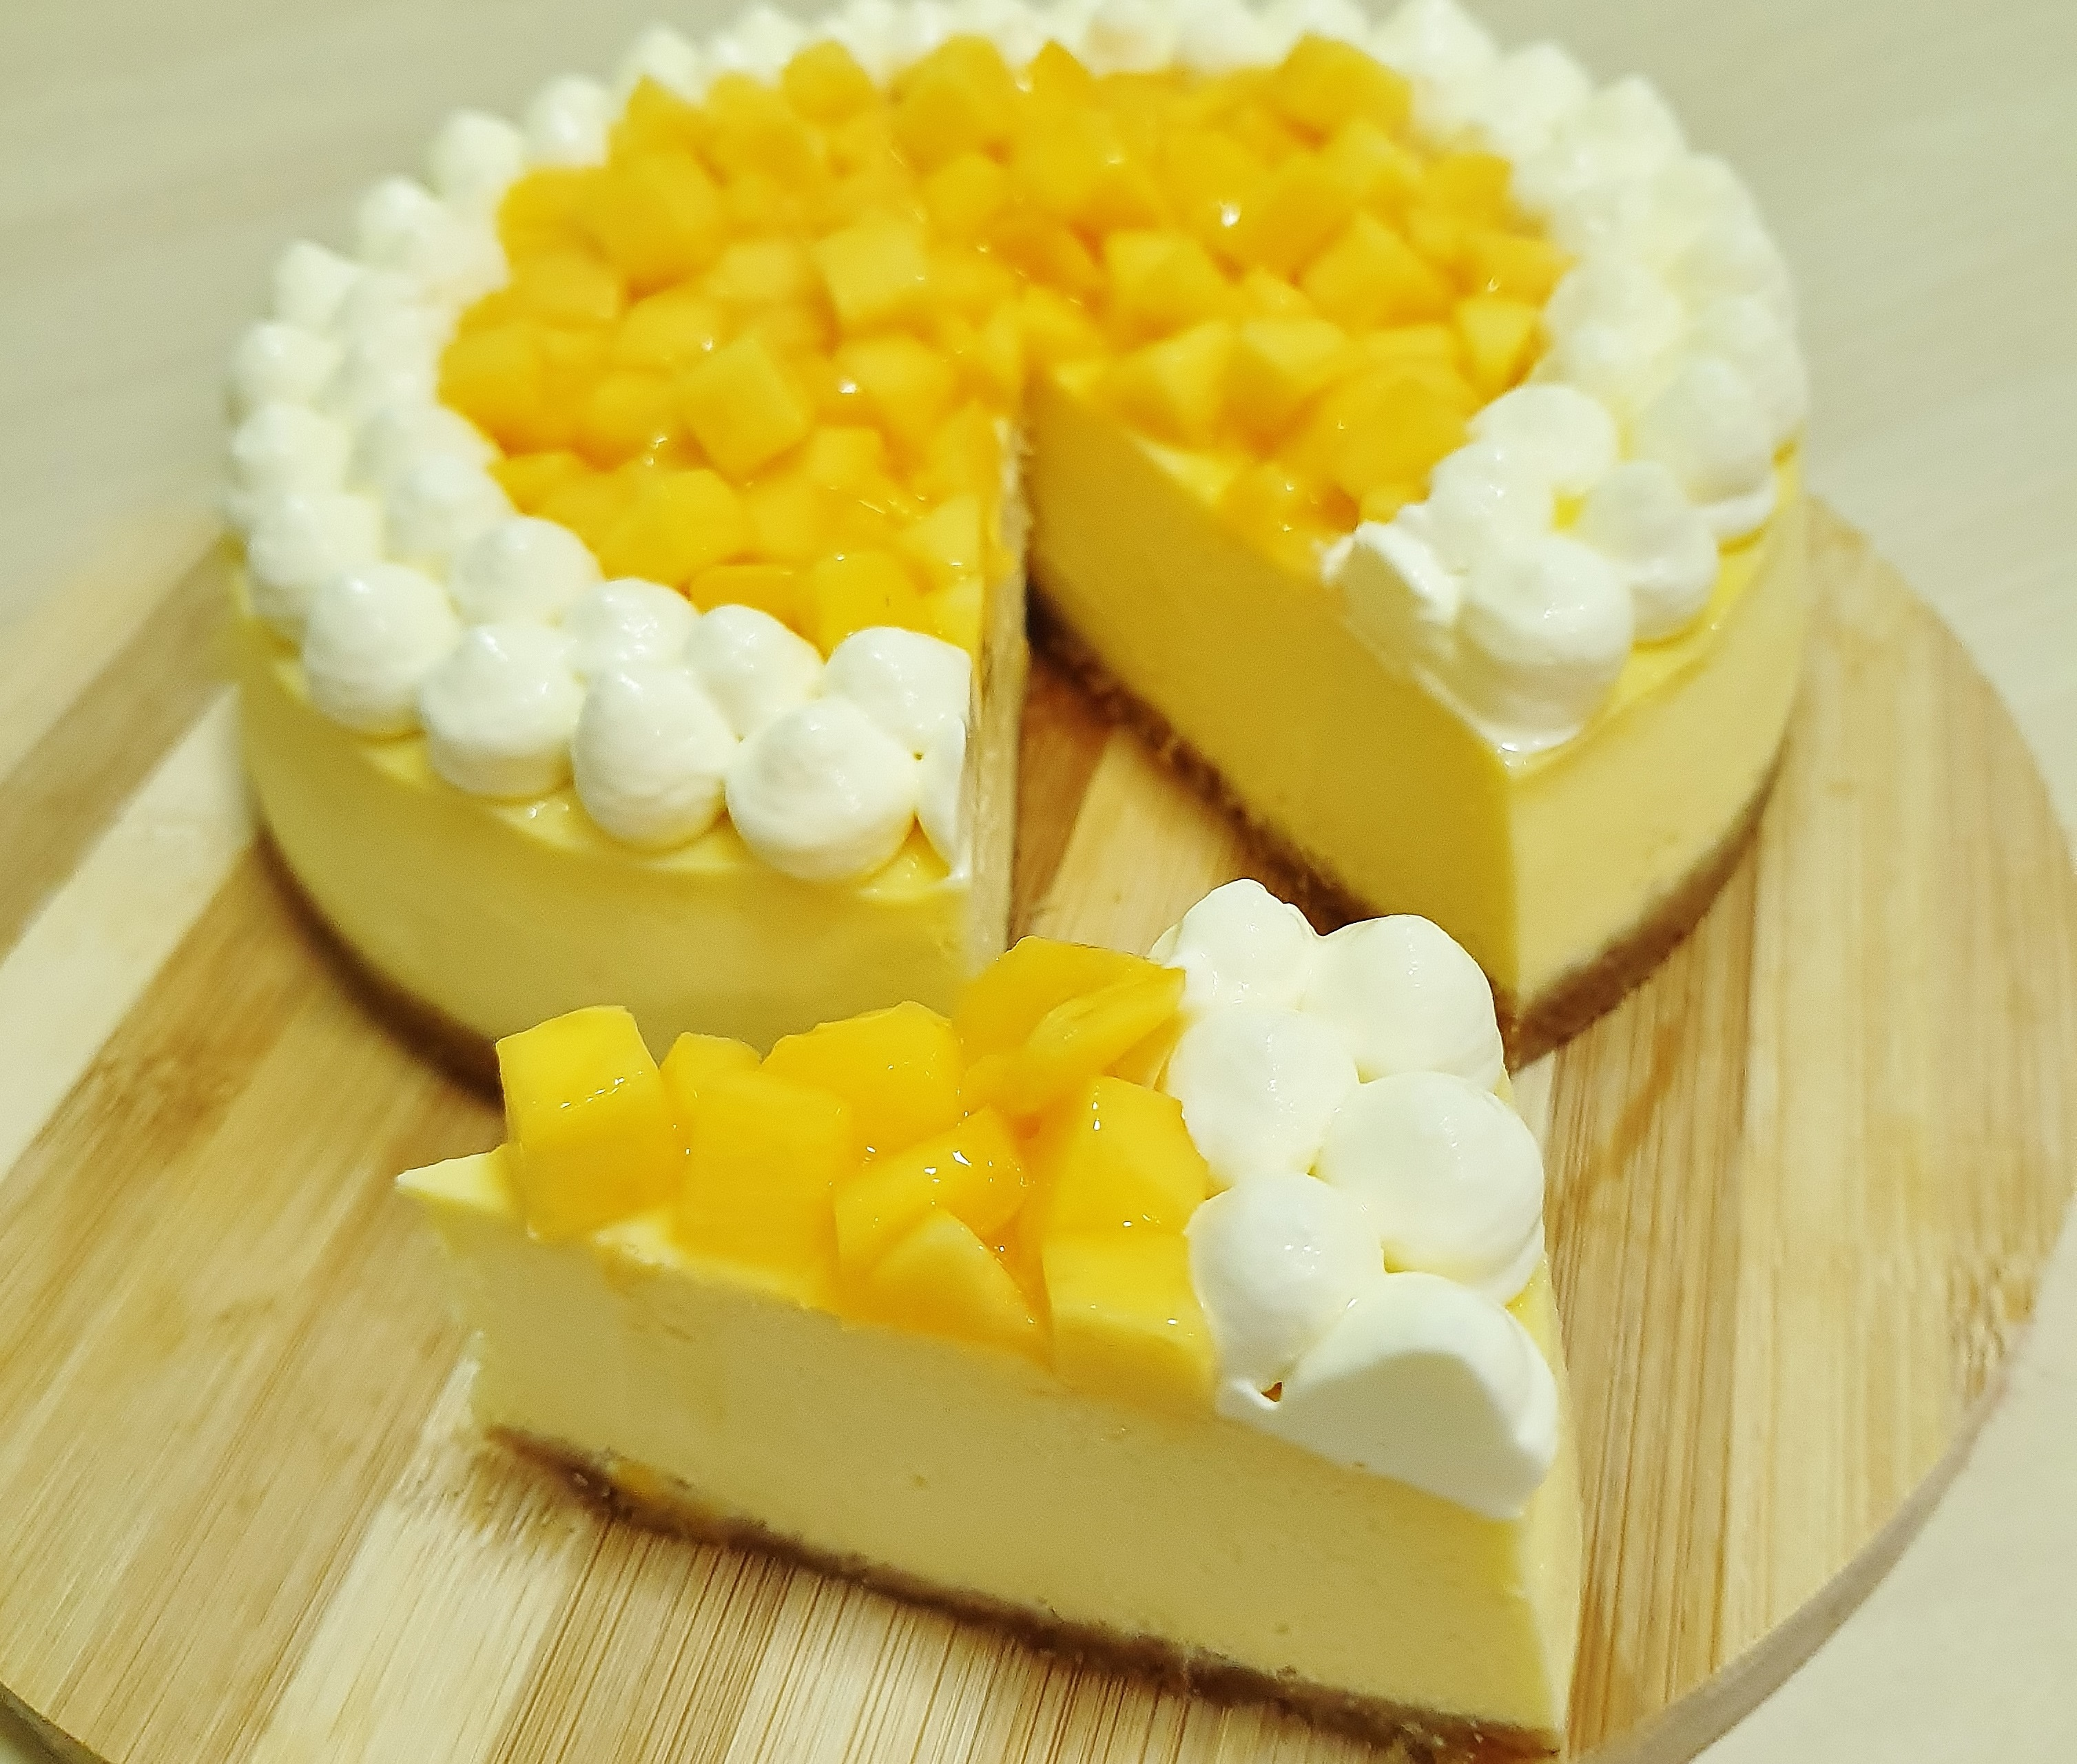 Mango Cheesecake with Whipped Cream and Fresh Mango